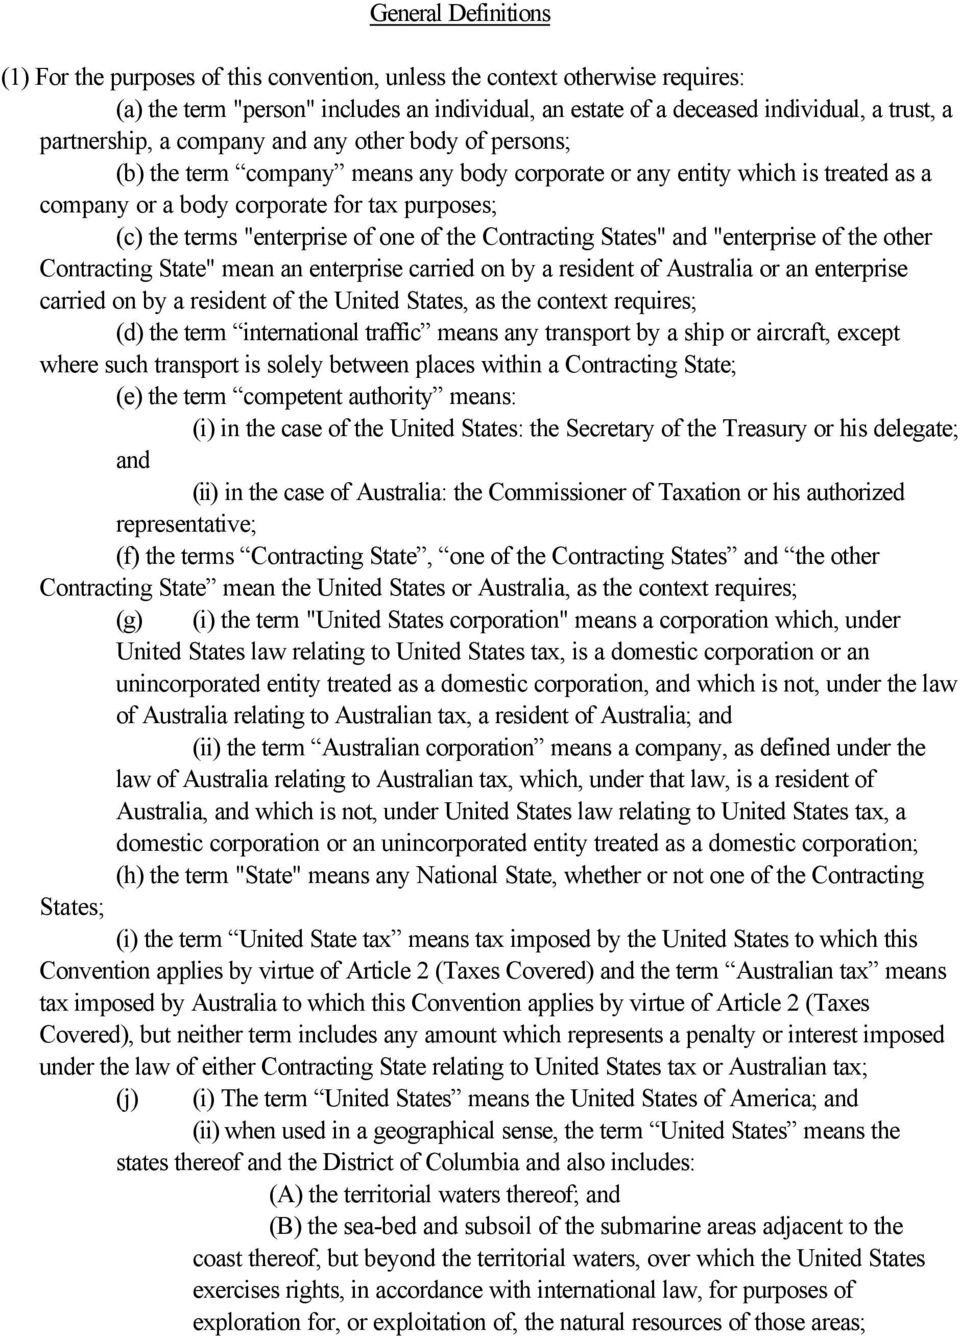 """enterprise of one of the Contracting States"" and ""enterprise of the other Contracting State"" mean an enterprise carried on by a resident of Australia or an enterprise carried on by a resident of the"